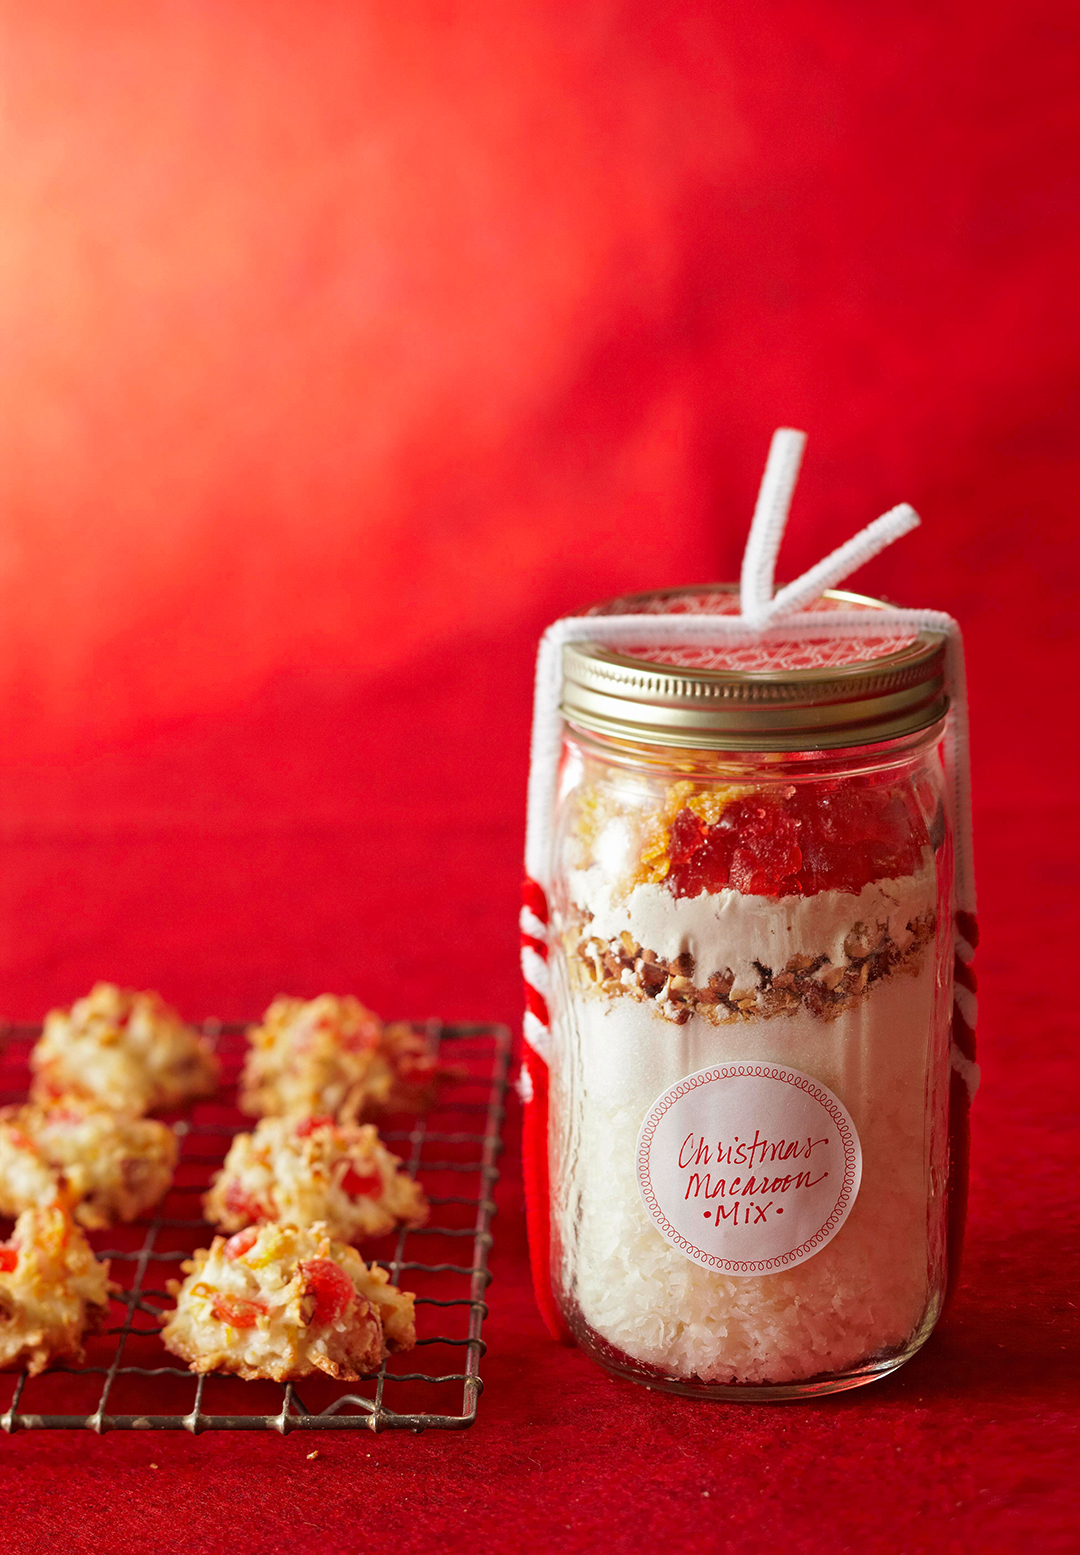 Christmas Macaroon Mix in jar against red background